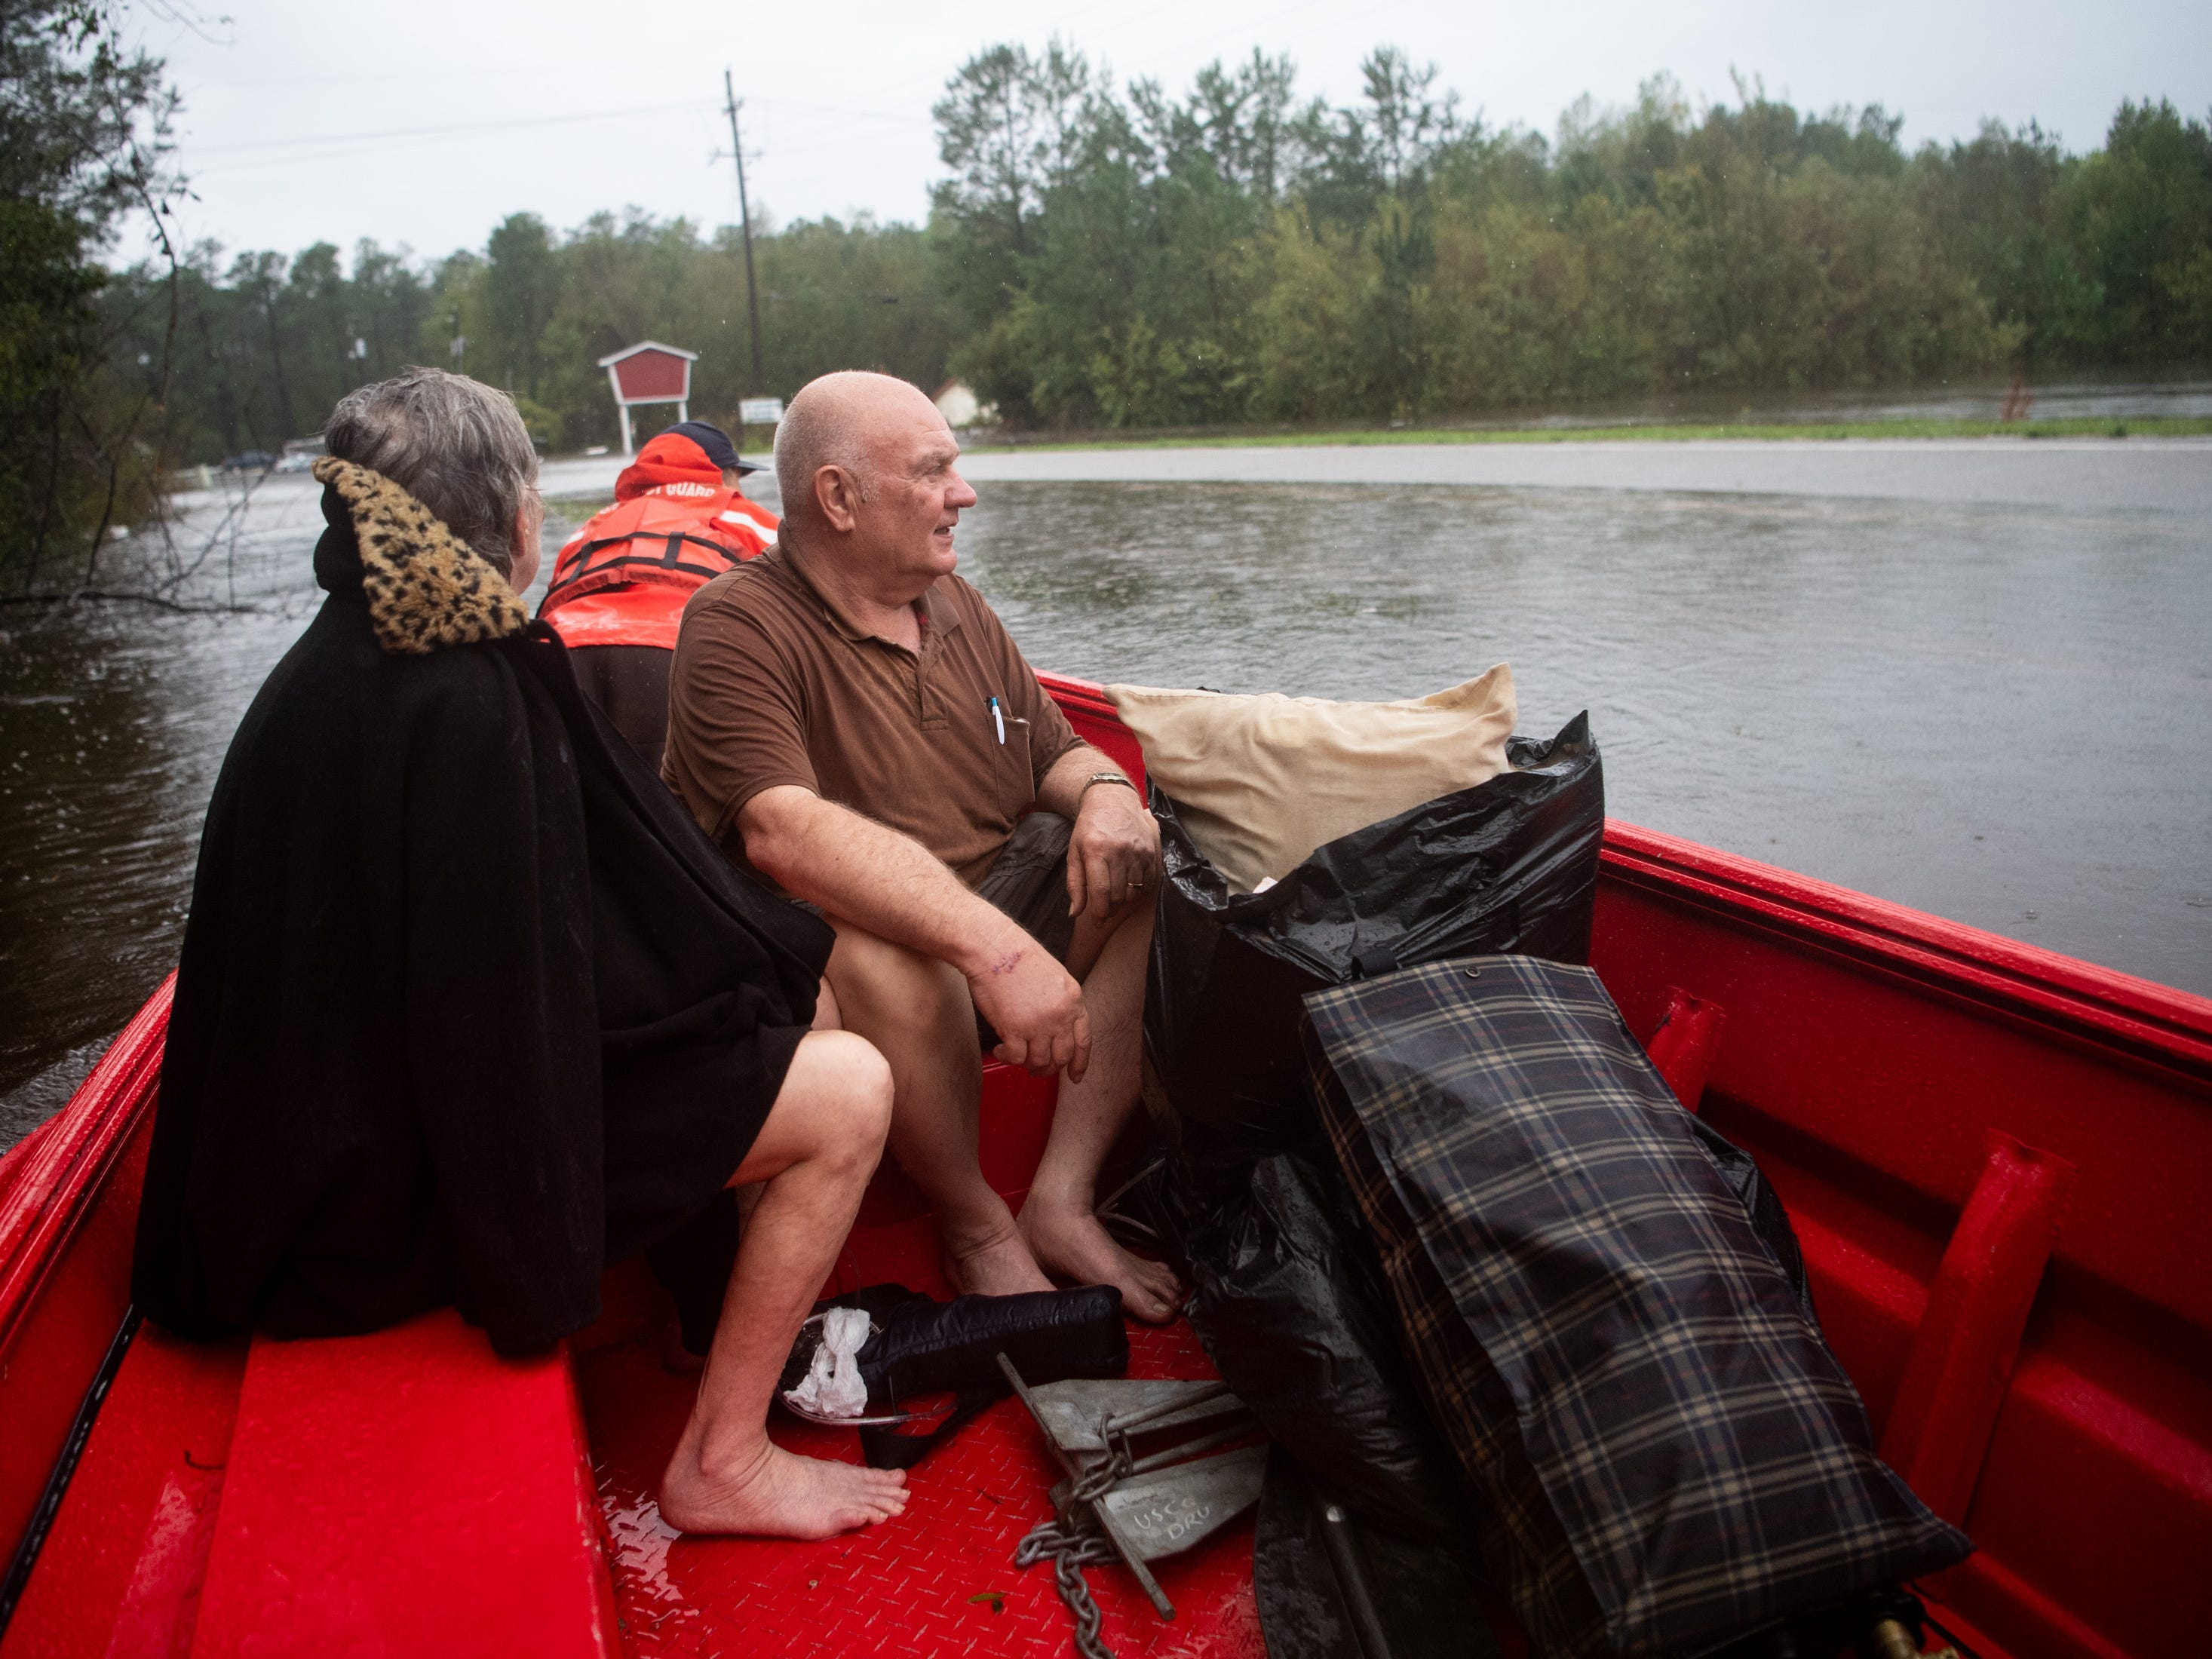 Josephine Horne, left, and Jackie Horne, center are evacuated from their flooded home in Columbus County, N.C., by Coast Guardsmen, Sunday, Sept. 16, 2018.